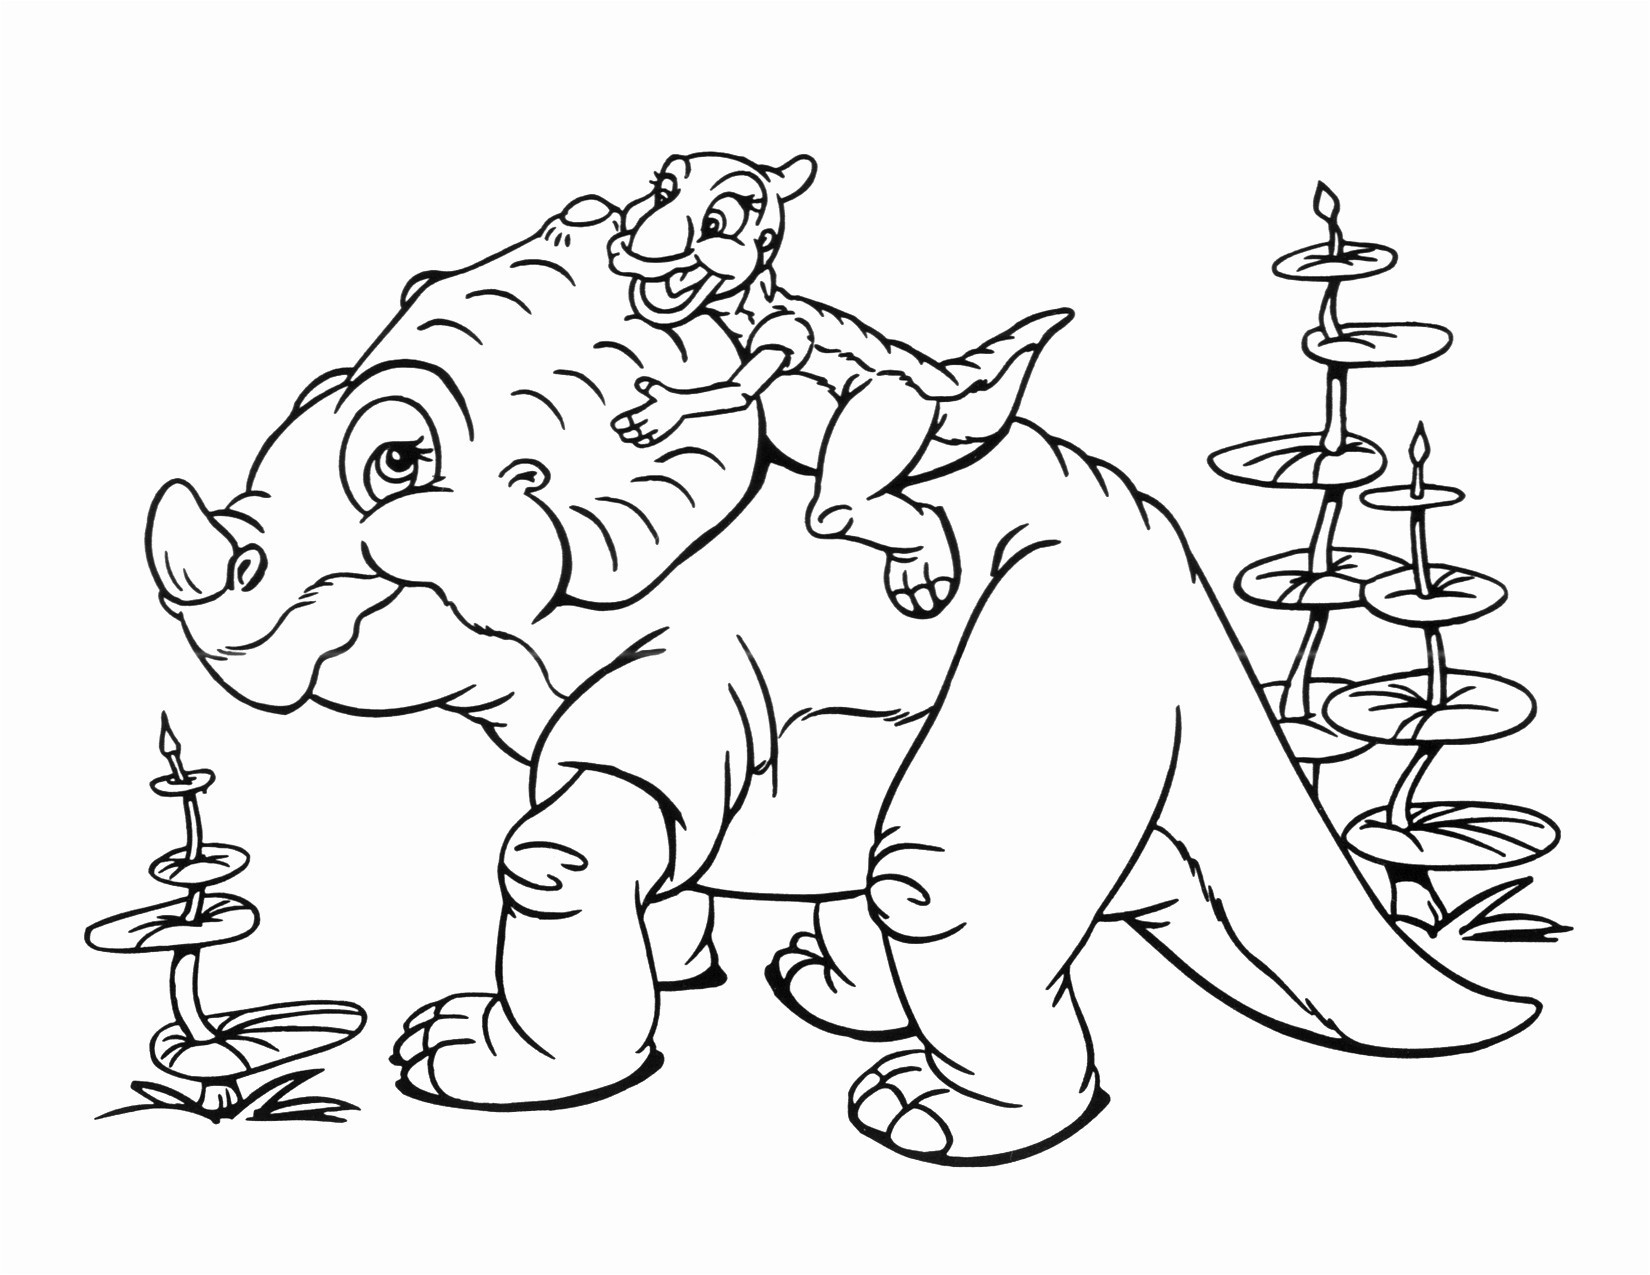 Elephant And Piggie Coloring Pages Elephant And Piggie Coloring Sheets Lovely Mo Willems Coloring Pages